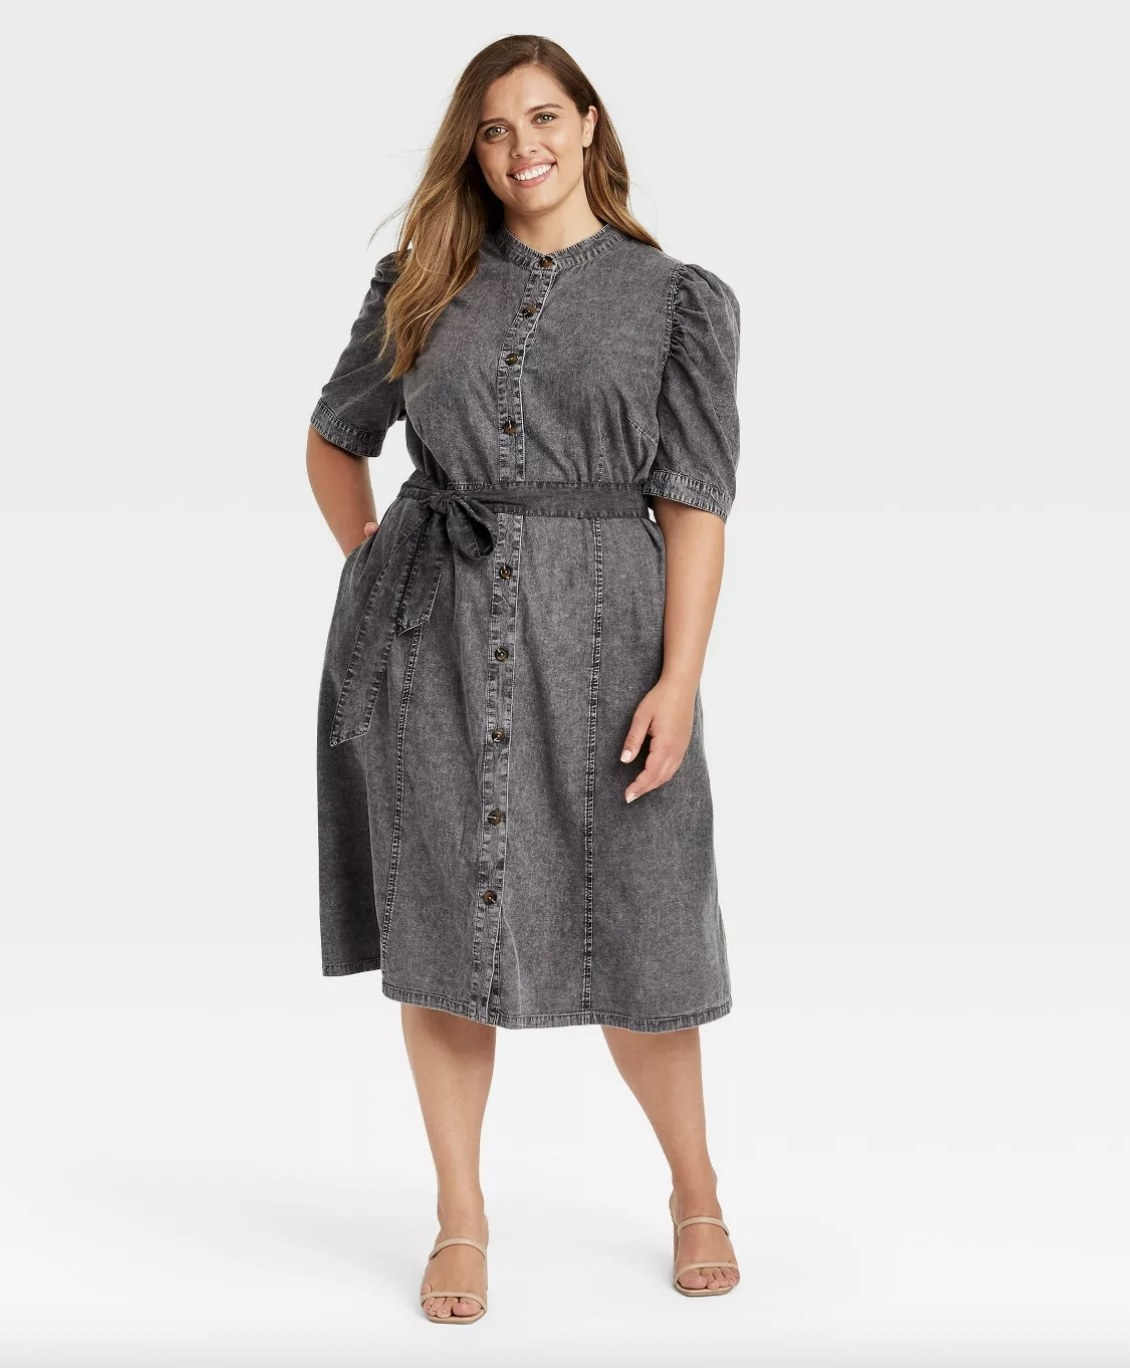 A woman wearing a grey denim dress with puff sleeves and sandals